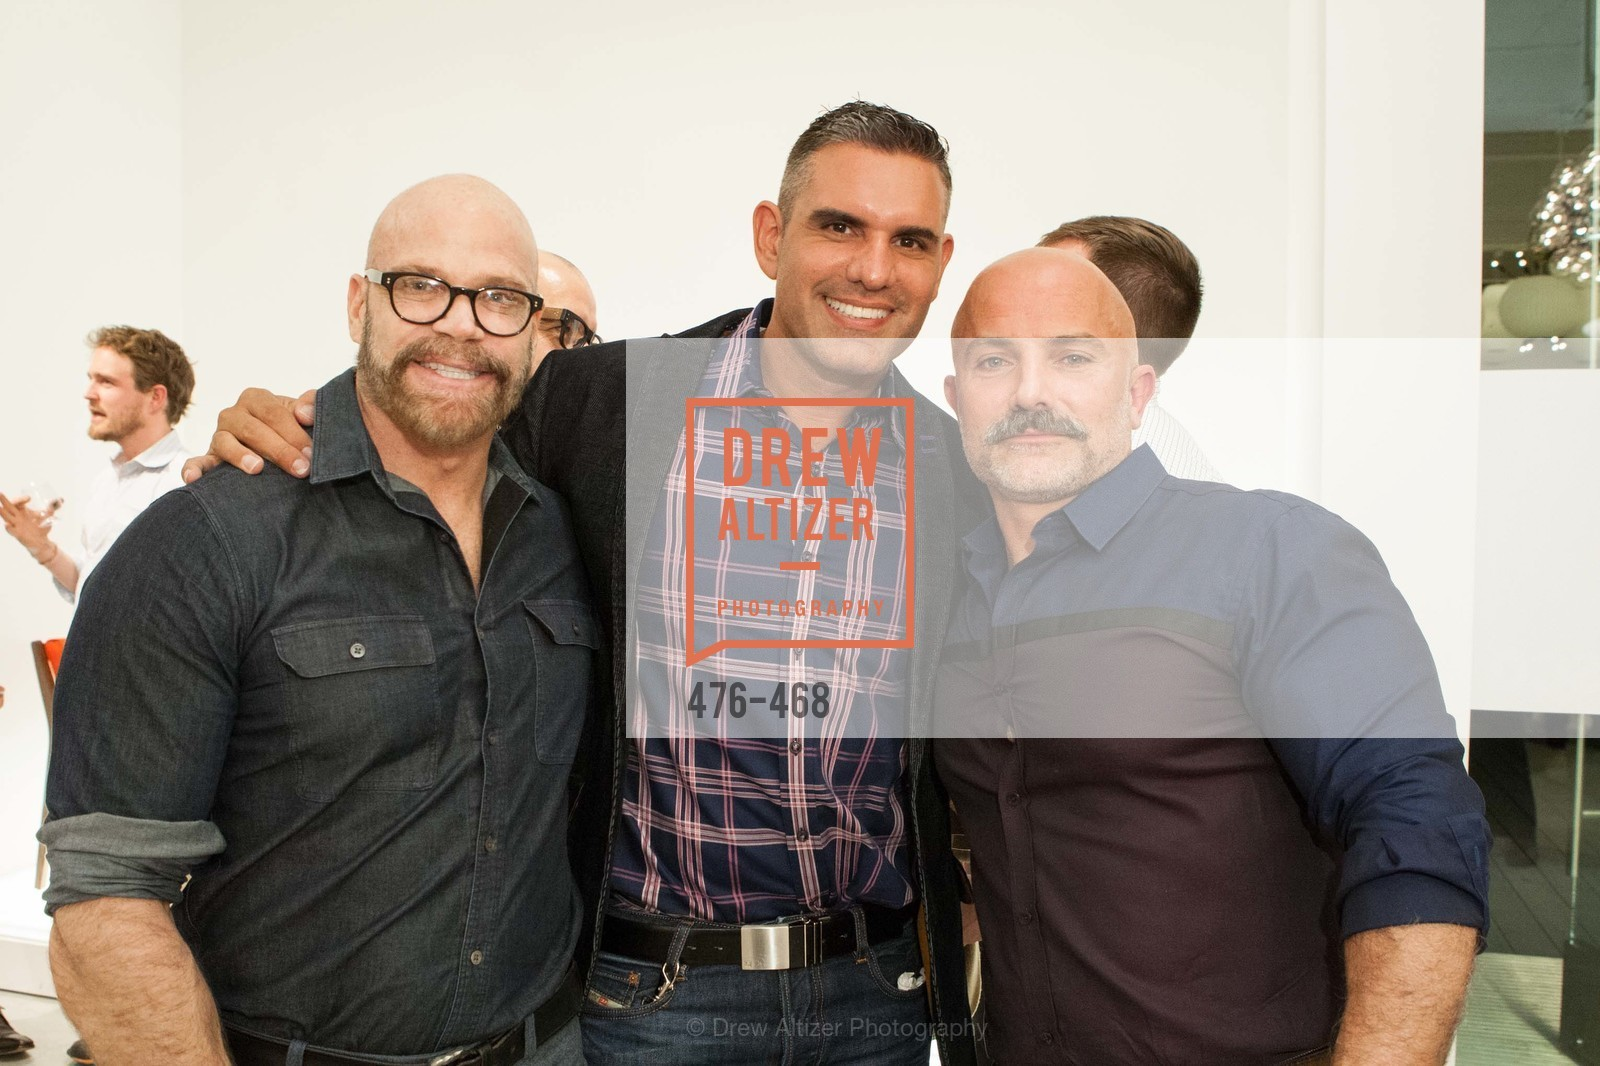 John VanCamp, Barton Cornejo, Laith Sayigh, DESIGN WITHIN REACH Studio Opening, US. US, January 21st, 2014,Drew Altizer, Drew Altizer Photography, full-service agency, private events, San Francisco photographer, photographer california